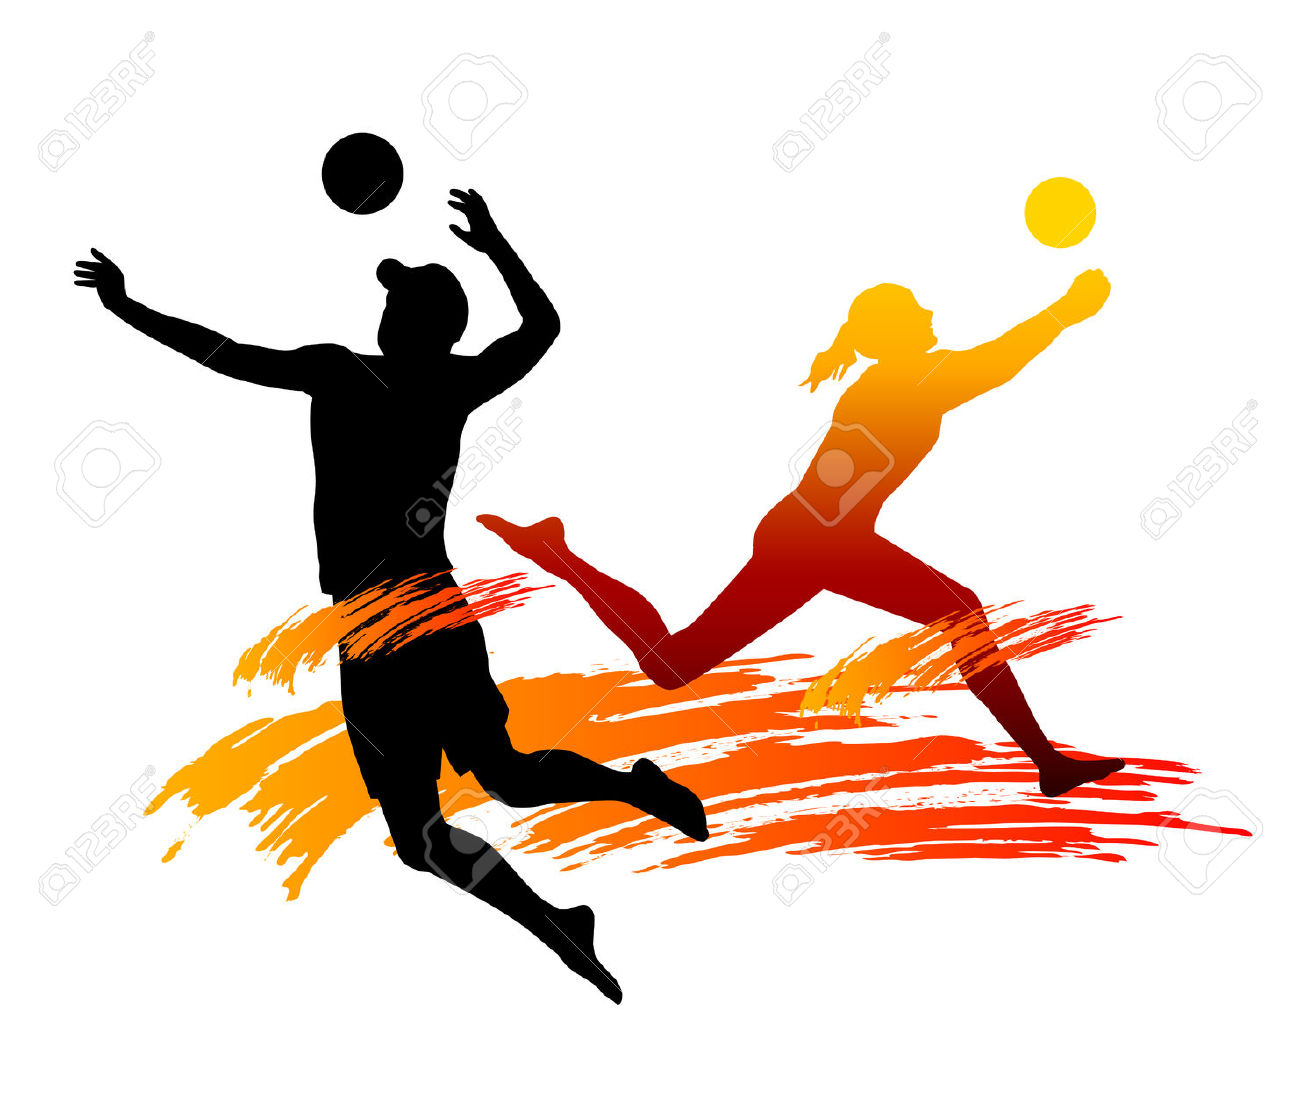 6,736 Volleyball Player Stock Vector Illustration And Royalty Free.